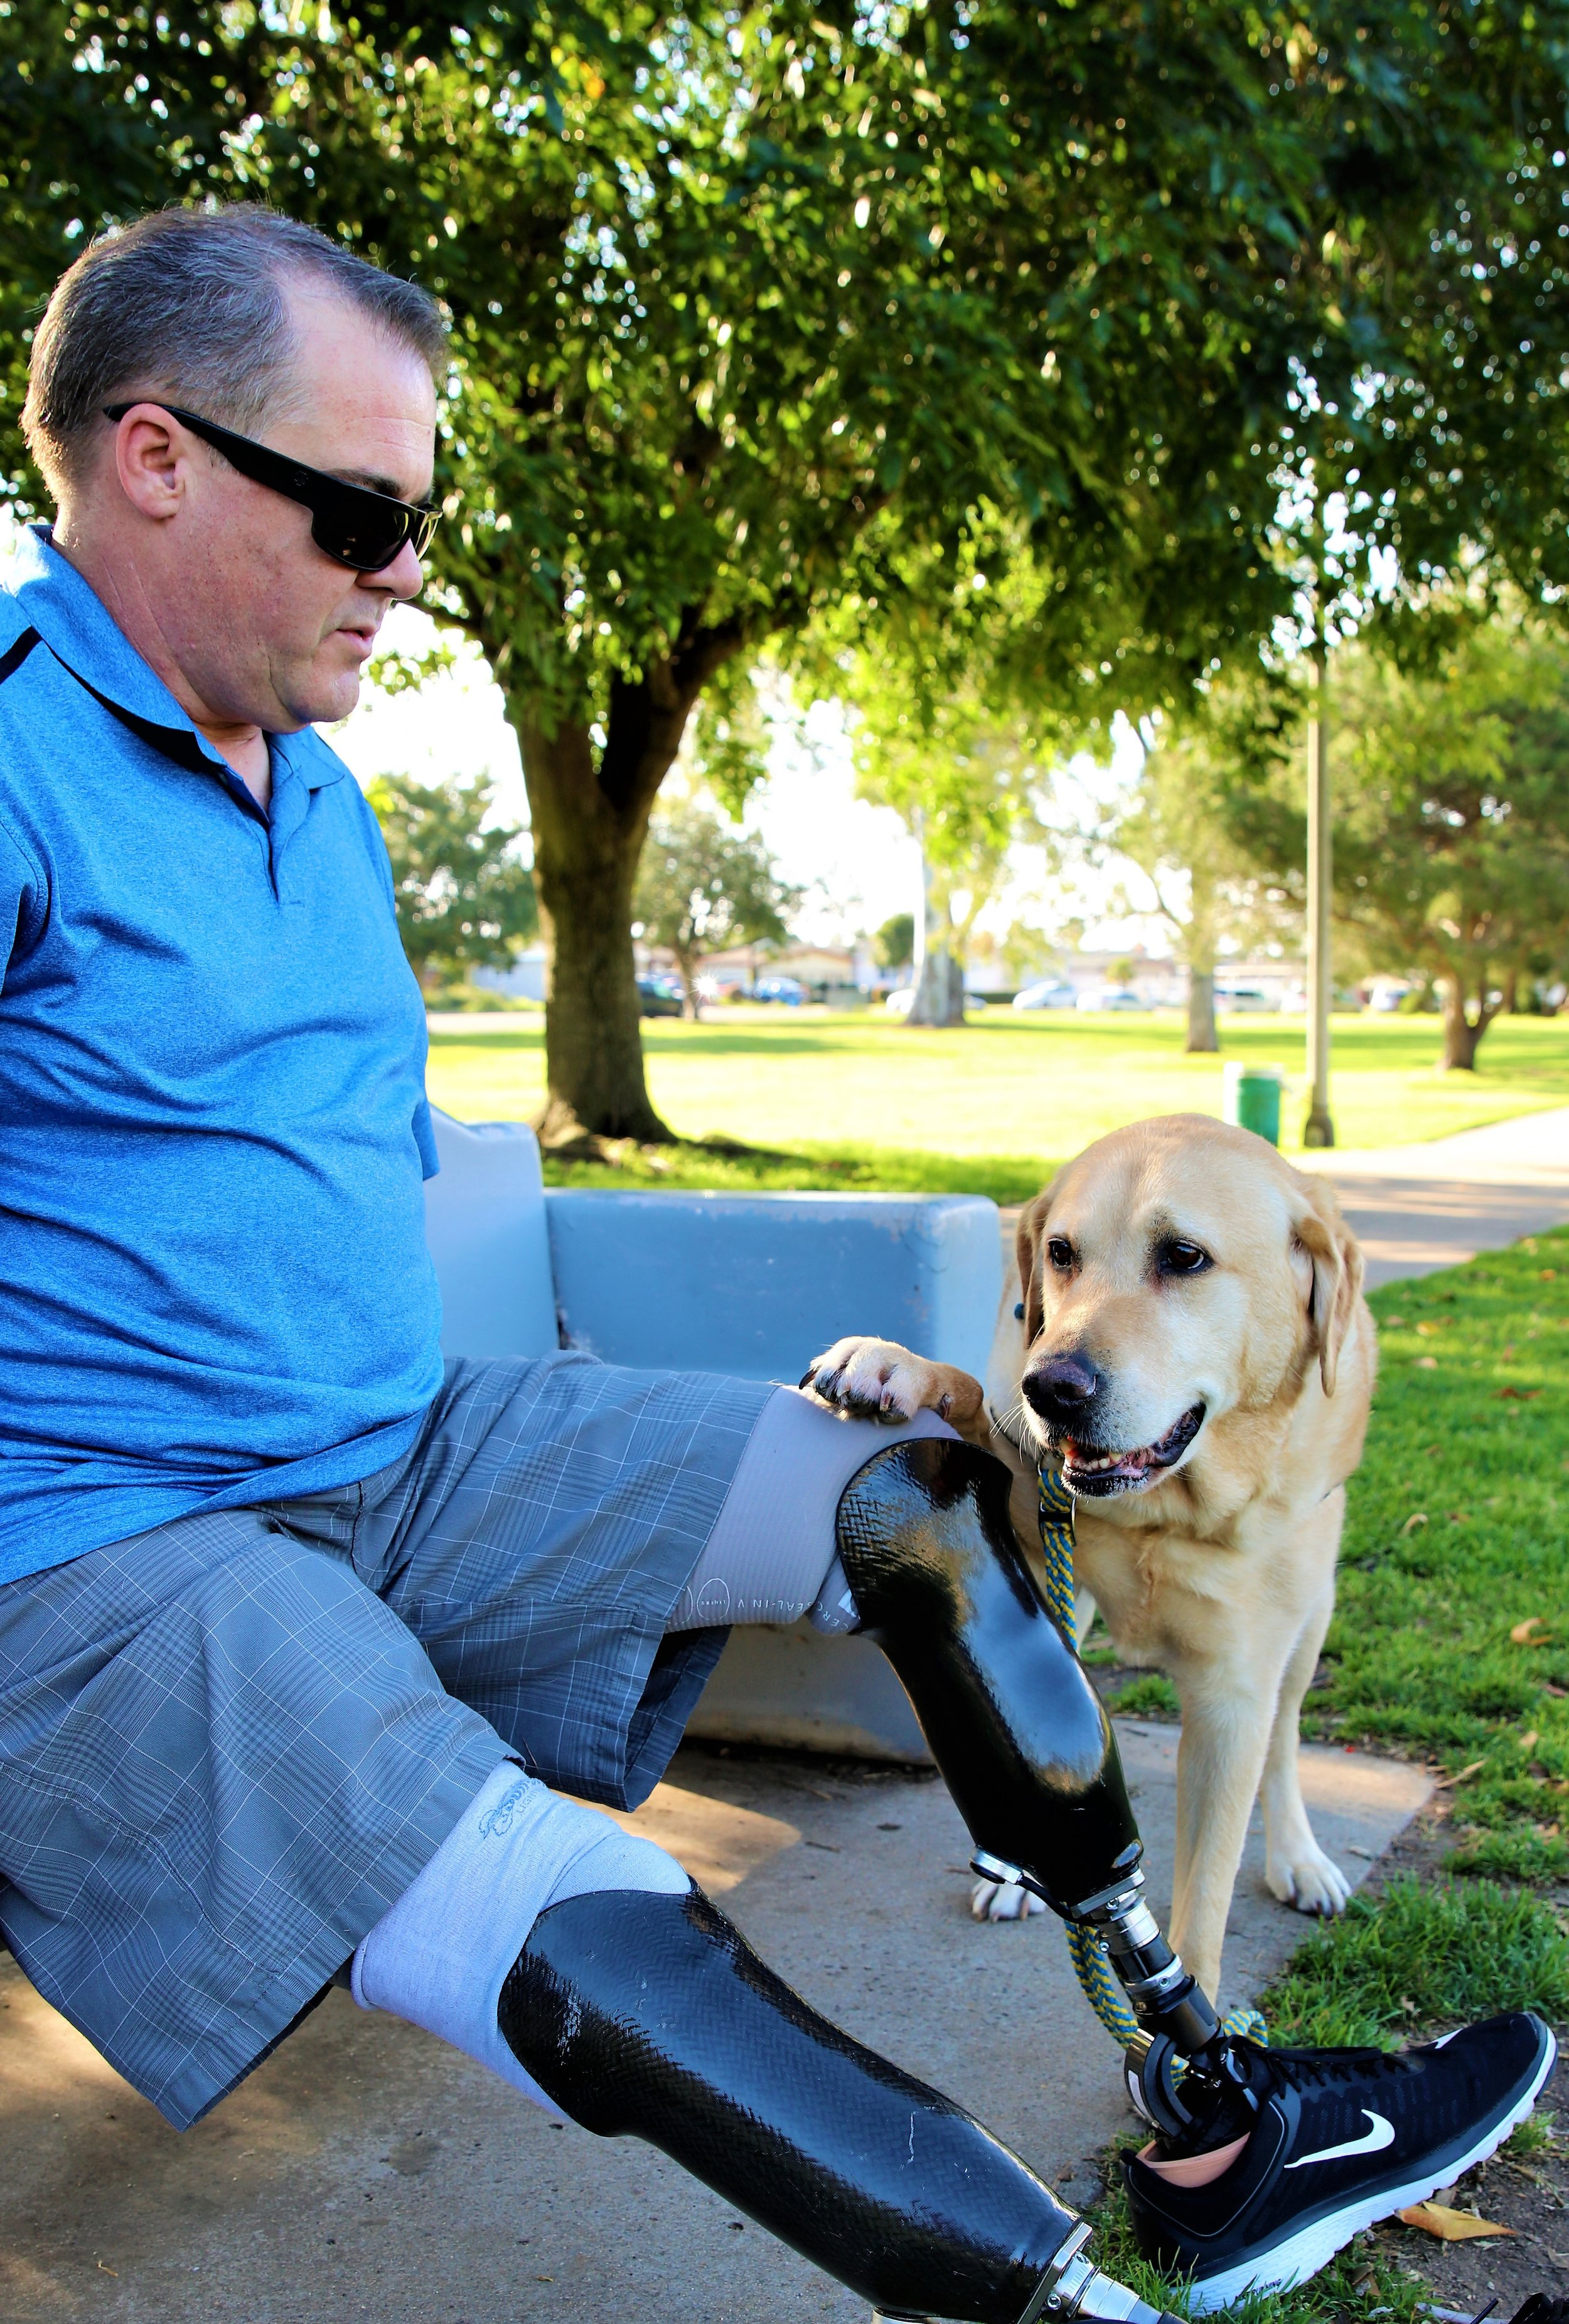 A Caucasian veteran with prosthetic legs looks down at his service dog after the dog puts his paw on the man's knee.